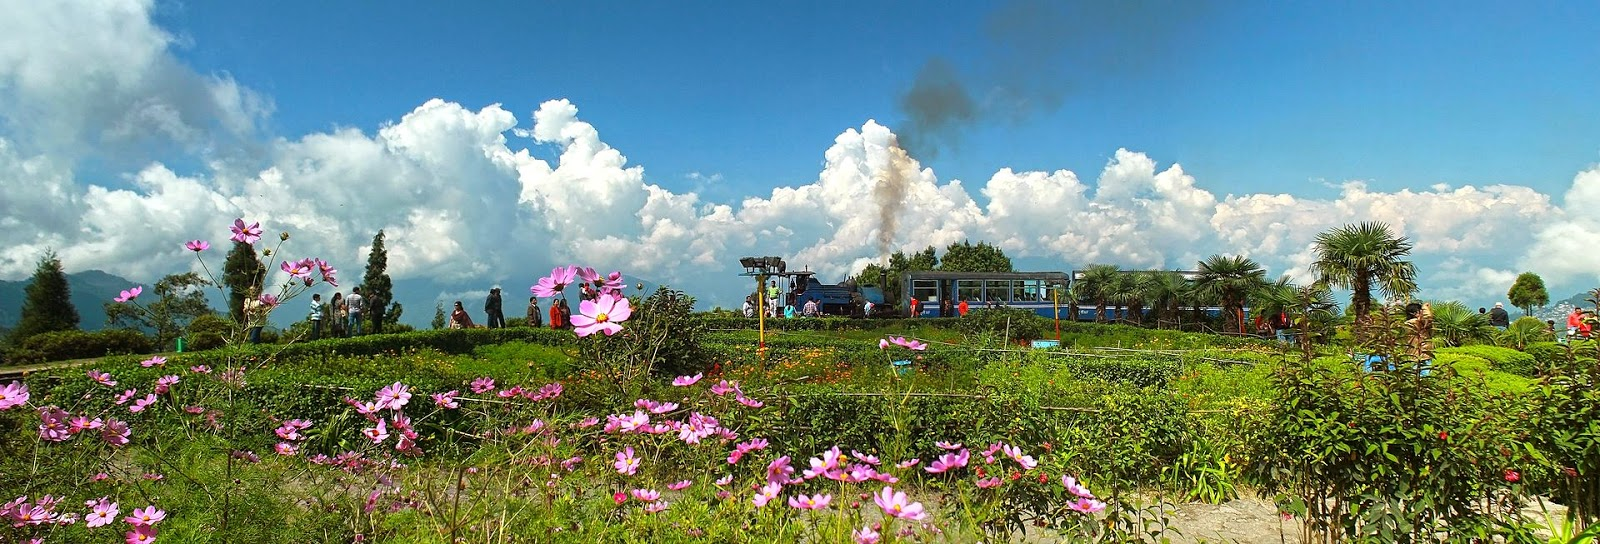 10 Best Backpacking Destinations in India | Batasia Loop, Indian Railways